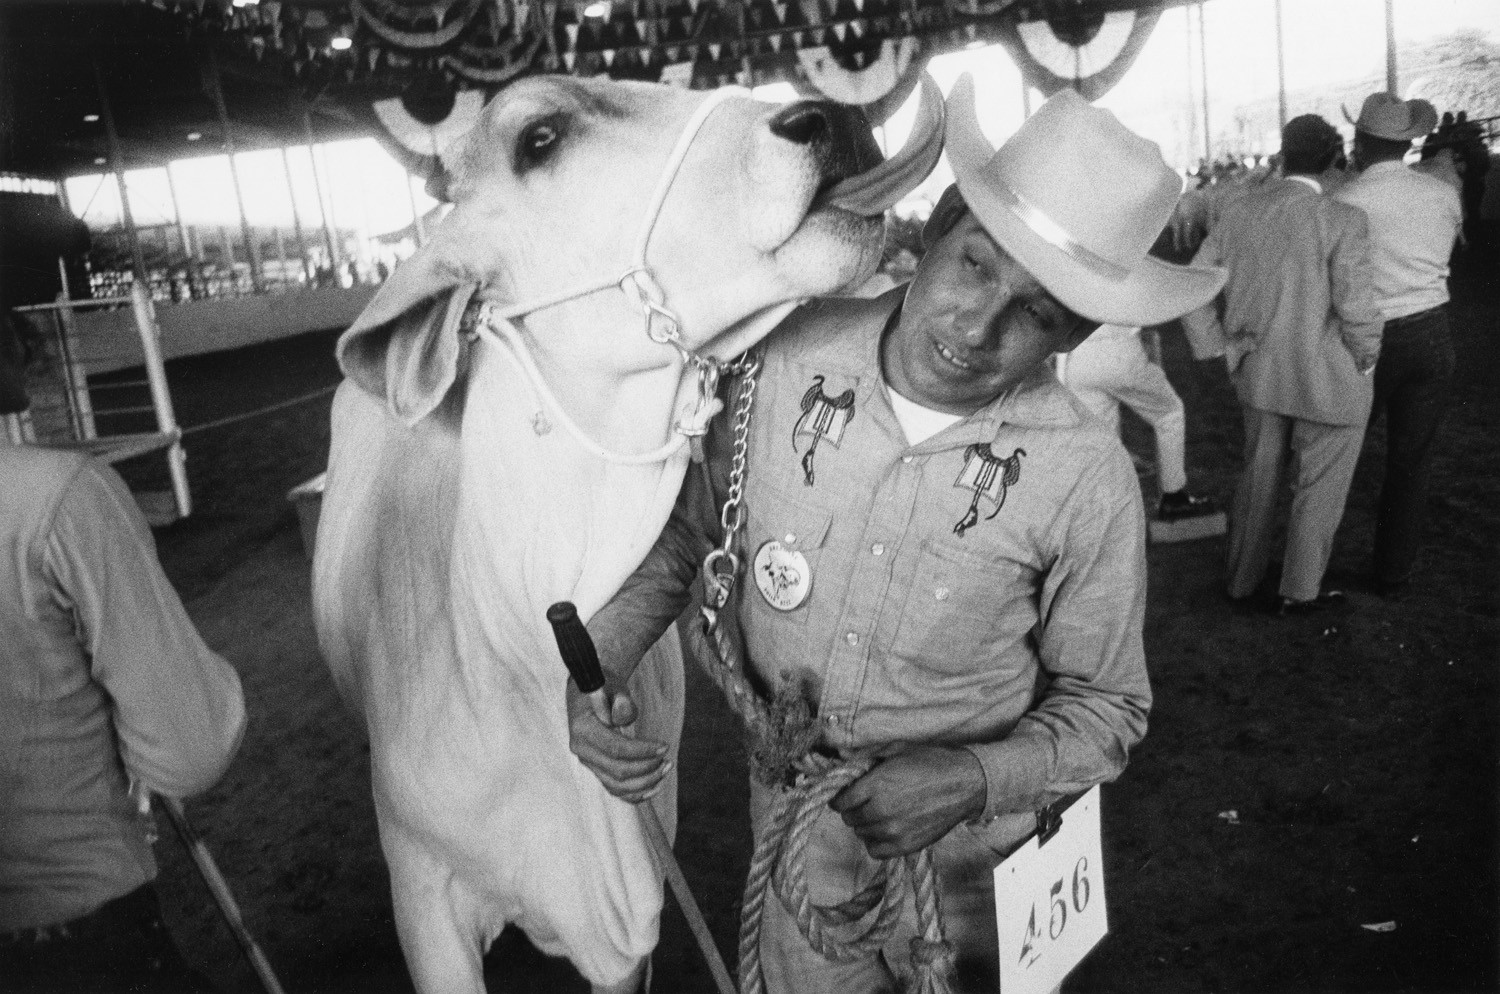 Garry Winogrand, Texas State Fair, Dallas, Texas, 1964